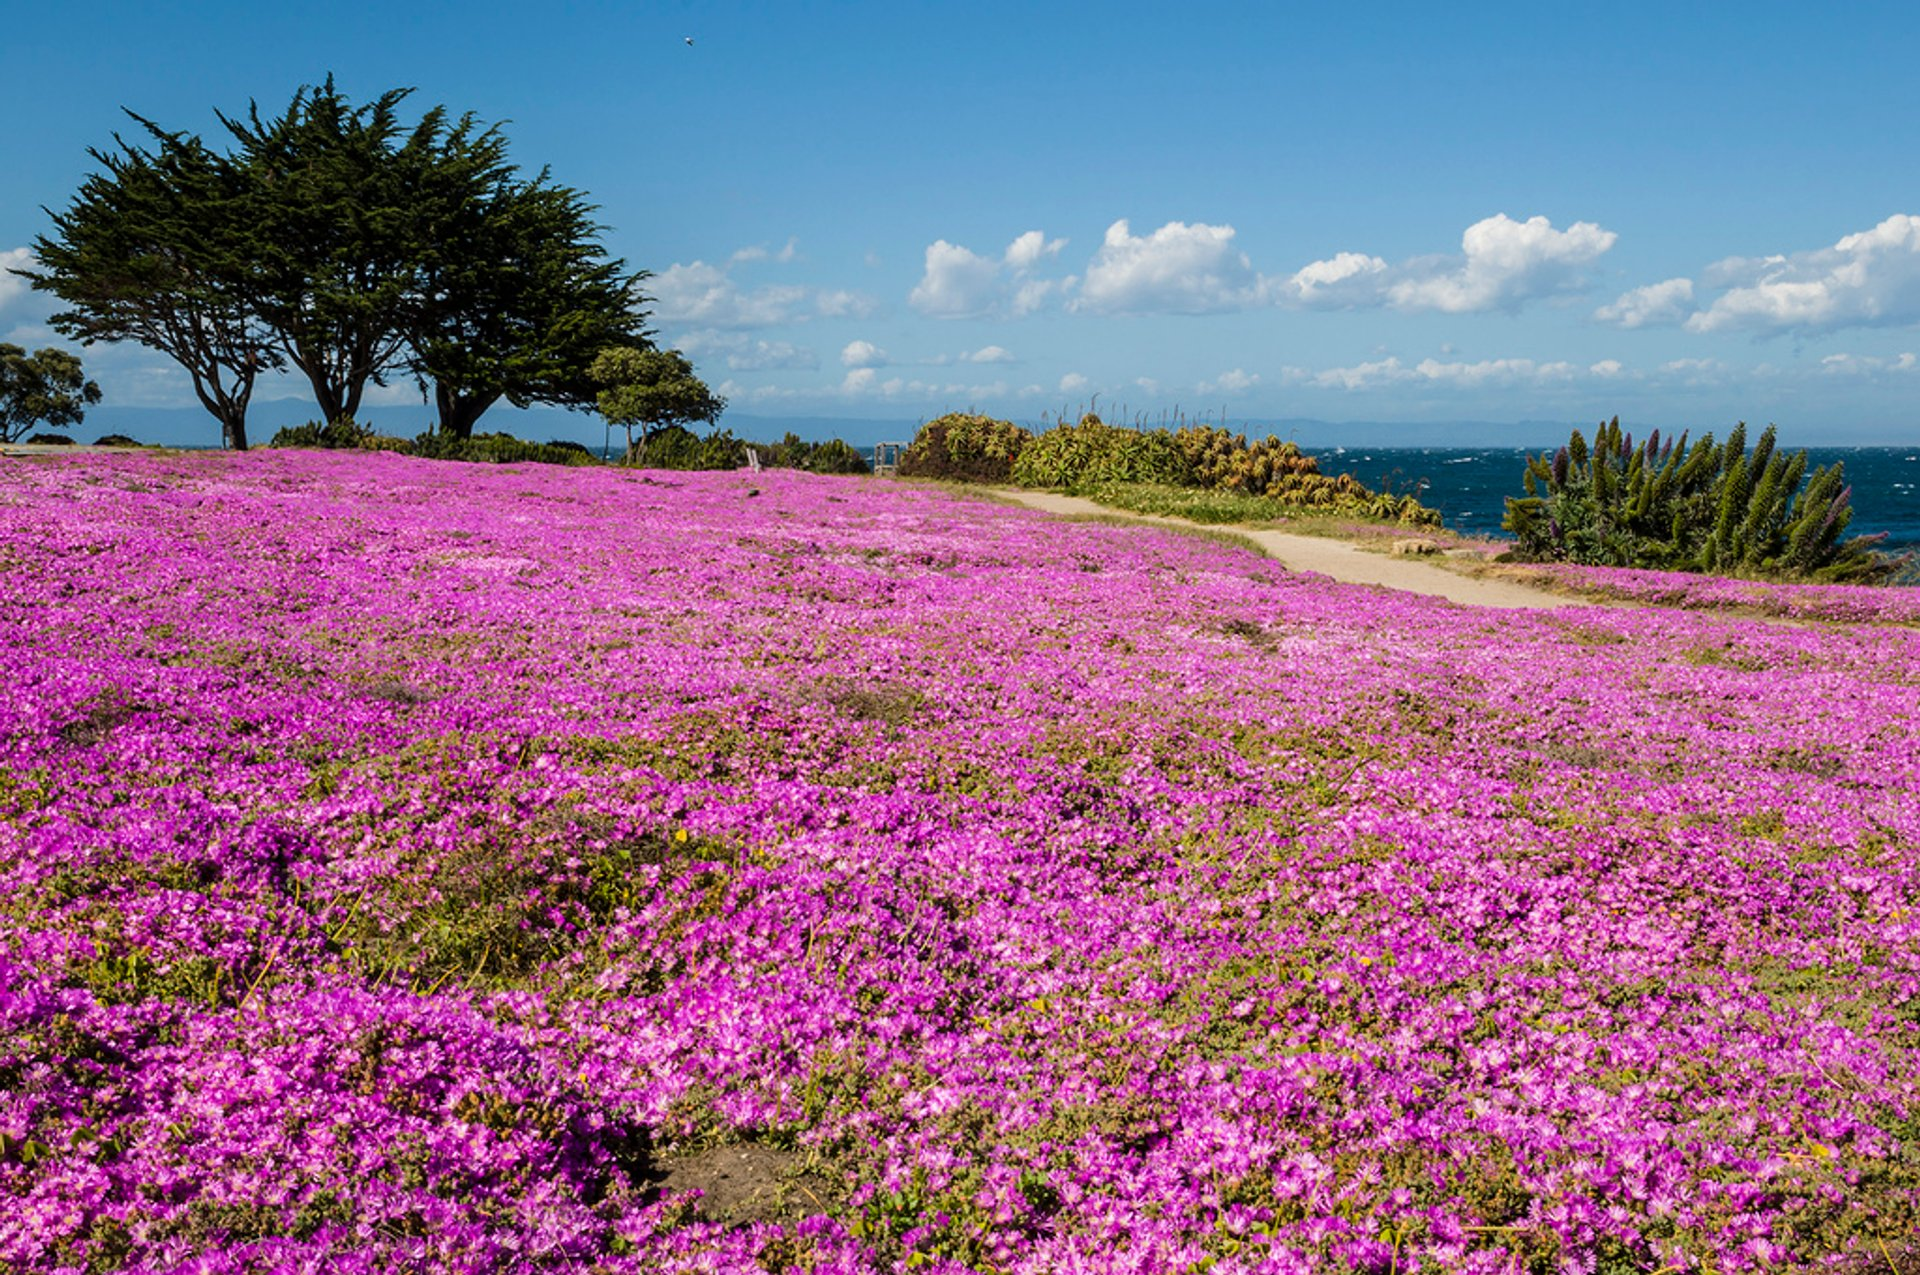 Ice Plant Bloom in California 2020 - Best Time